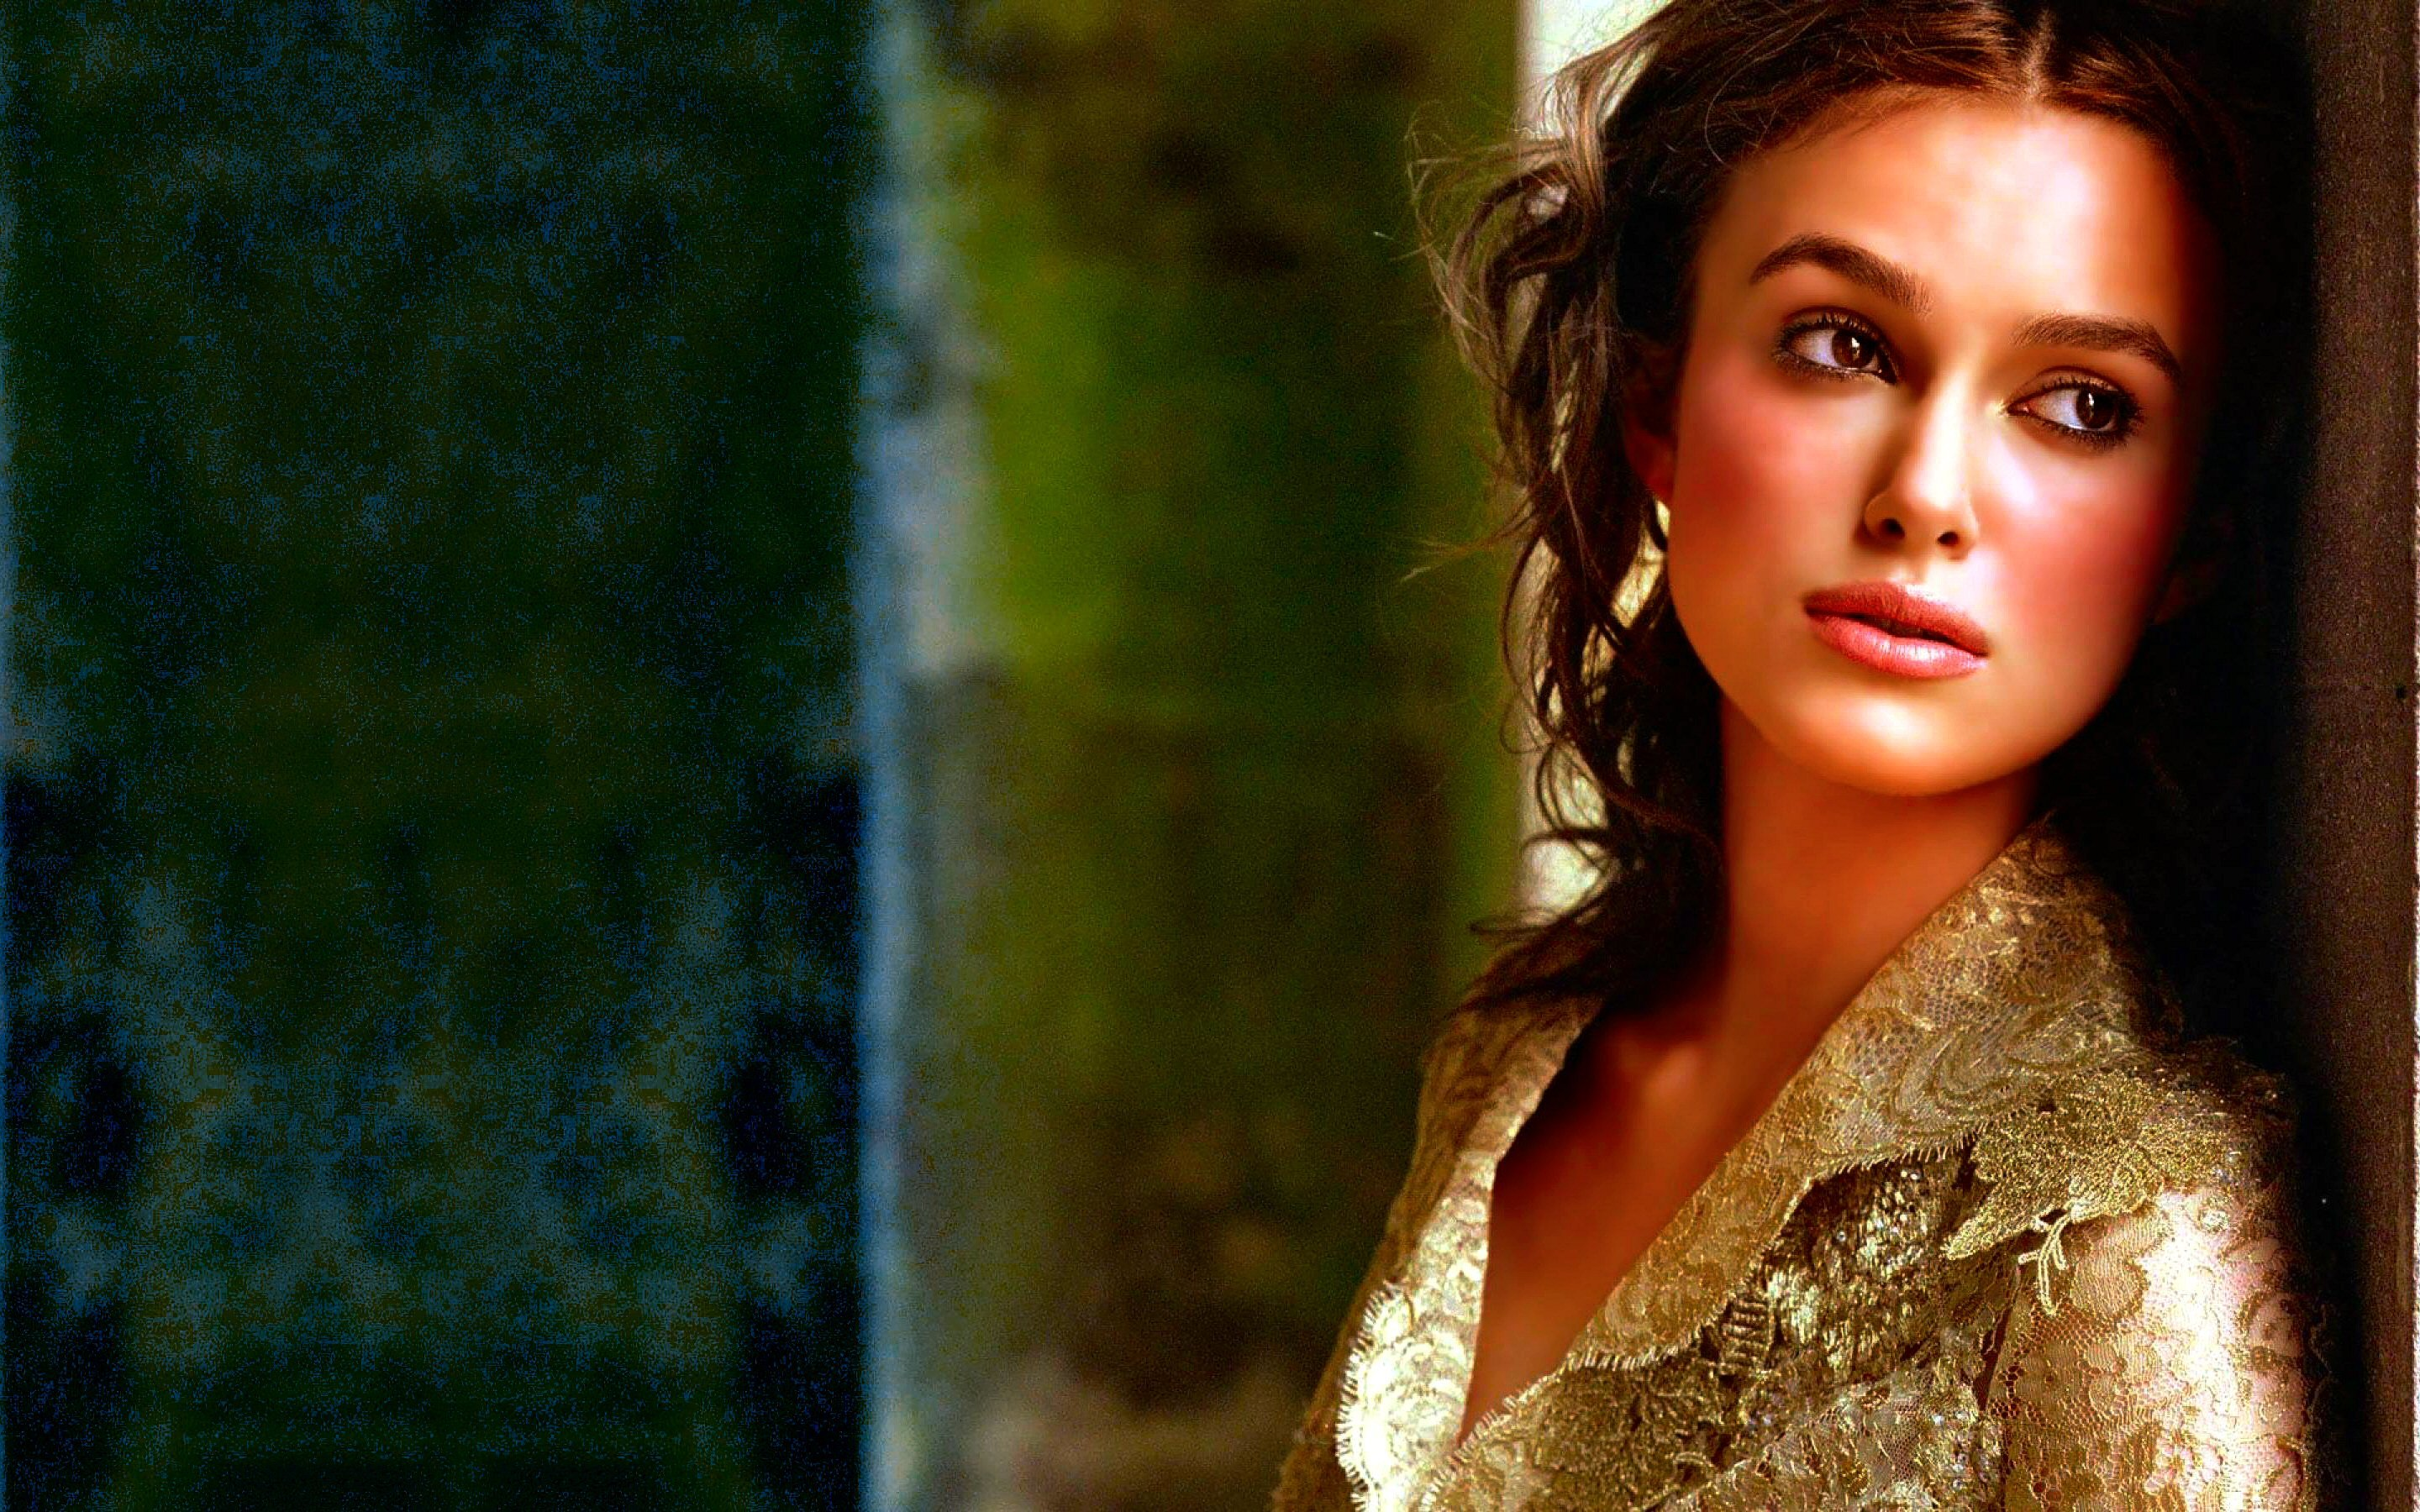 Awesome Keira Knightley free background ID:50272 for hd 2880x1800 computer